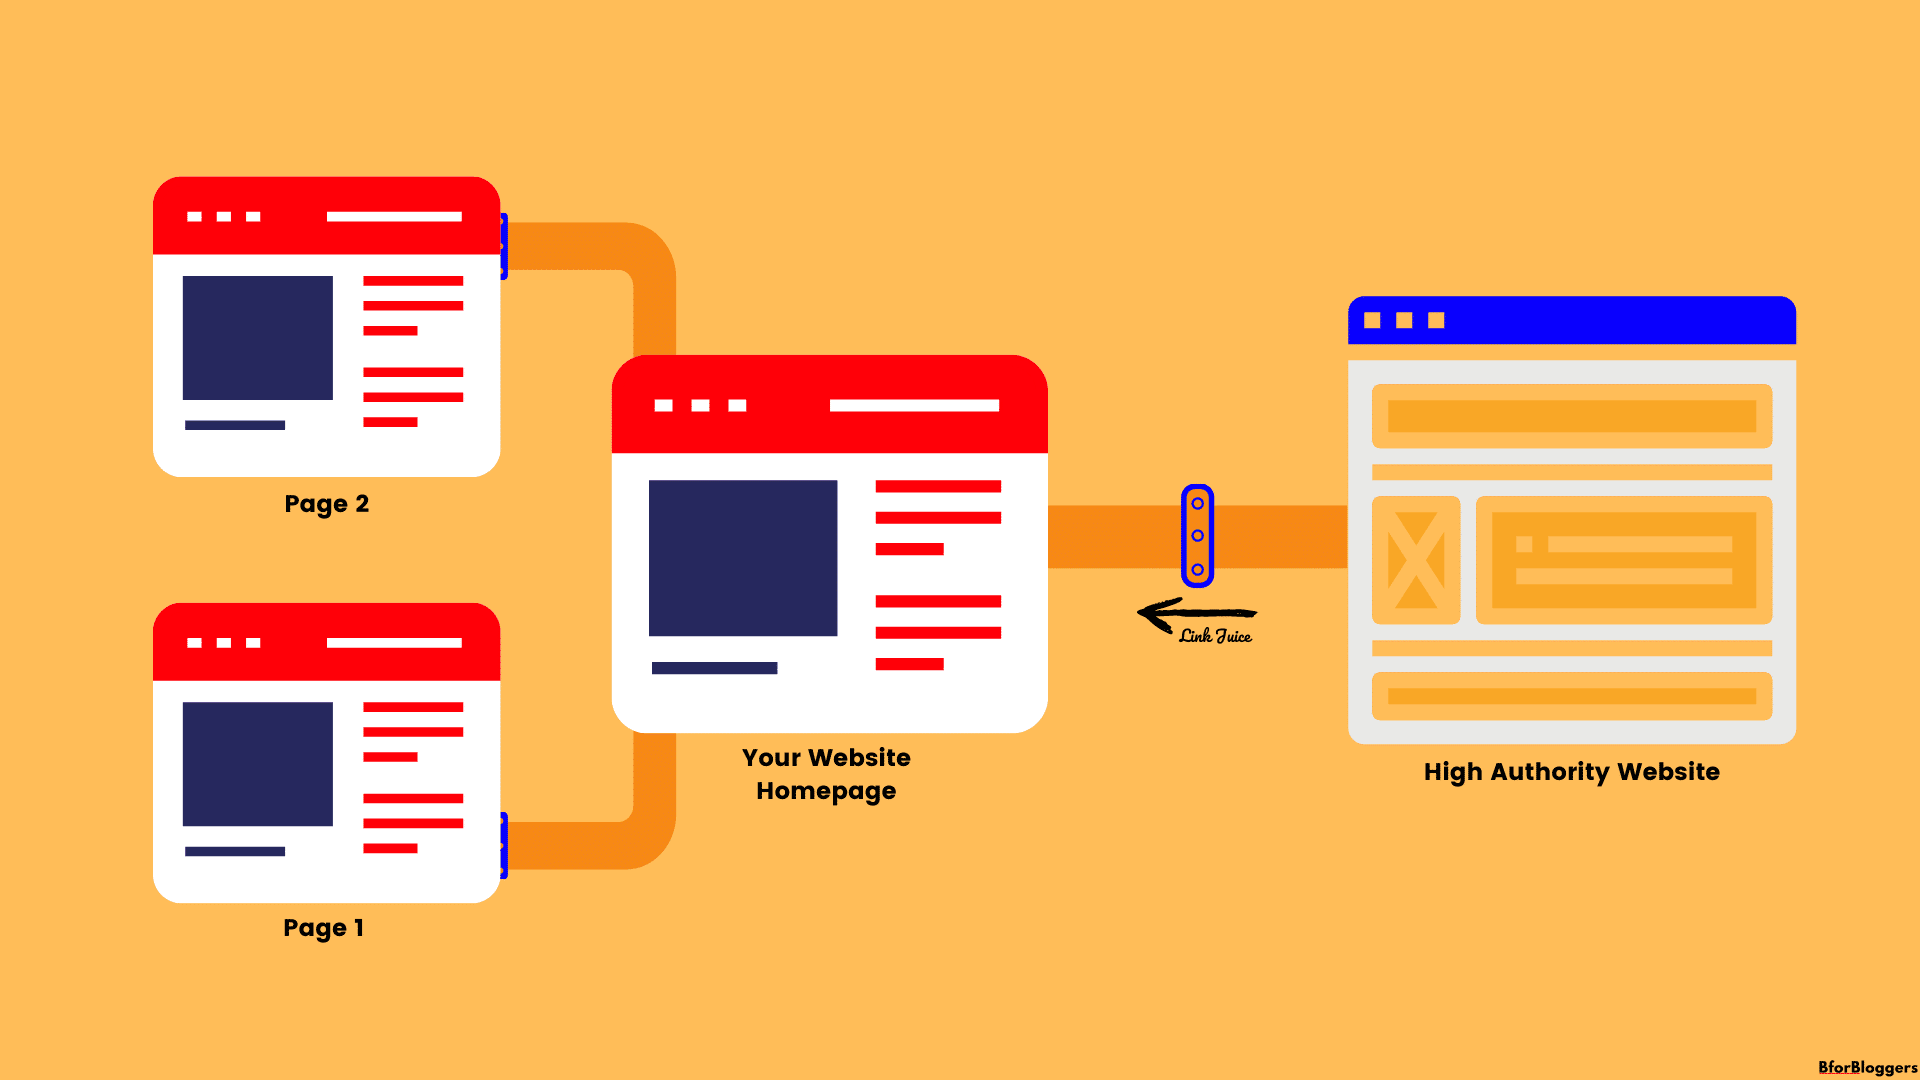 link-juice-passing-through-internal-links-illustration-by-BforBloggers